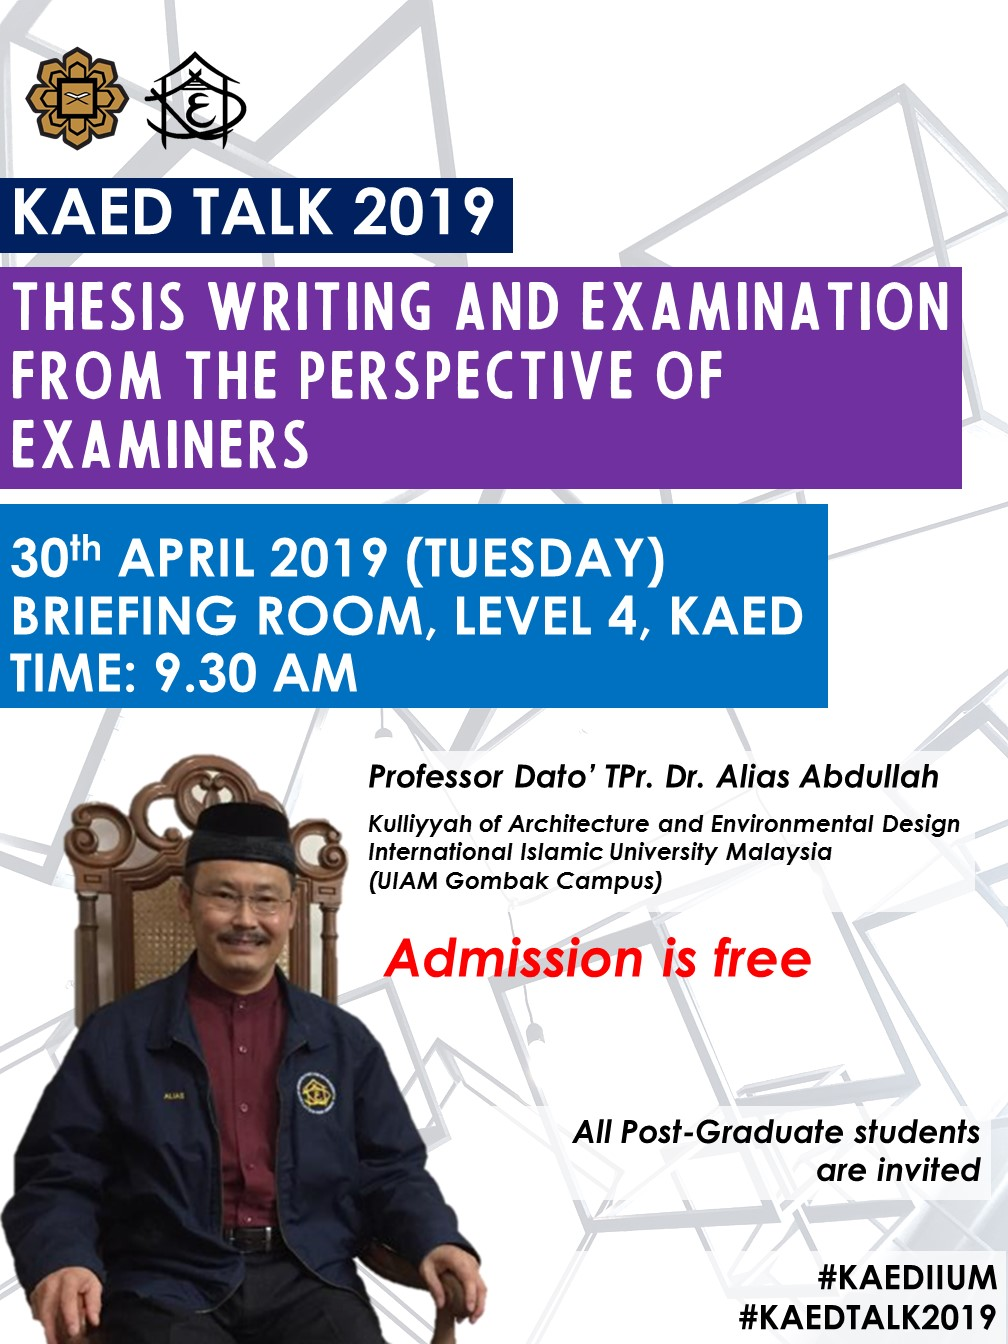 KAED Talk 2019: Thesis Writing and Examination from the Perspective of Examiners by Professor Dato' TPr. Dr. Alias Abdullah